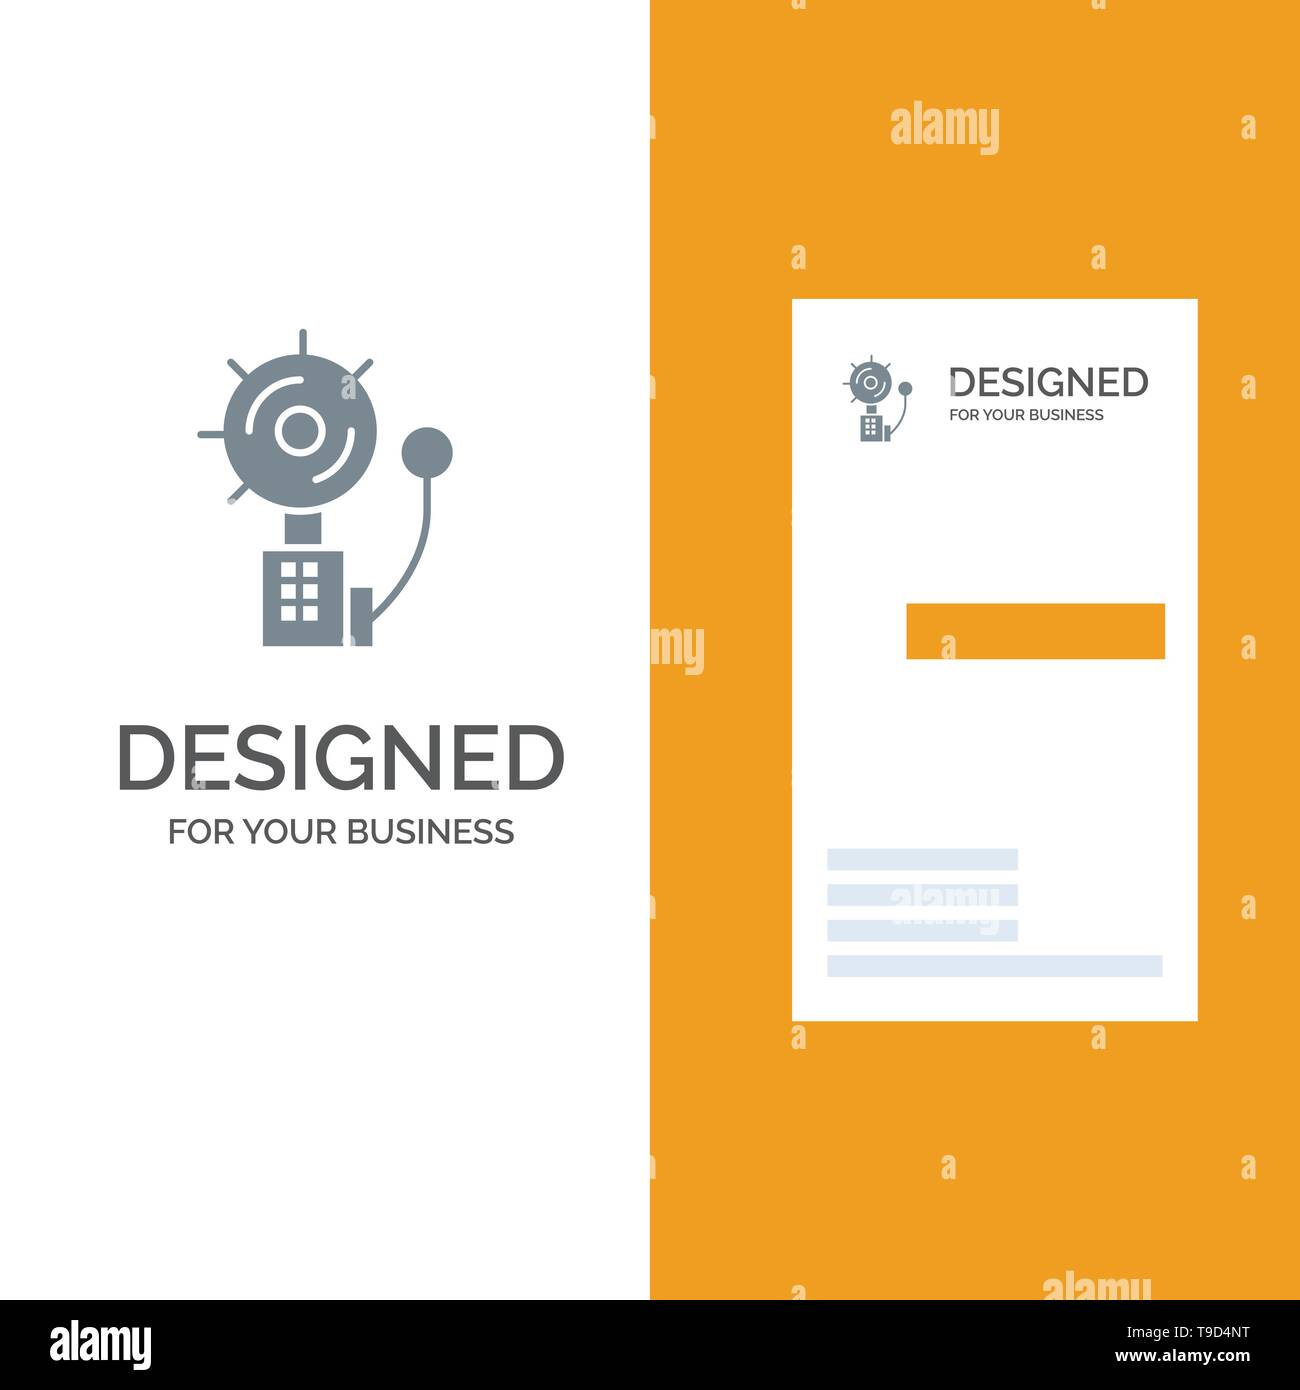 Alarm, Alert, Bell, Fire, Intruder Grey Logo Design and Business Card Template - Stock Image